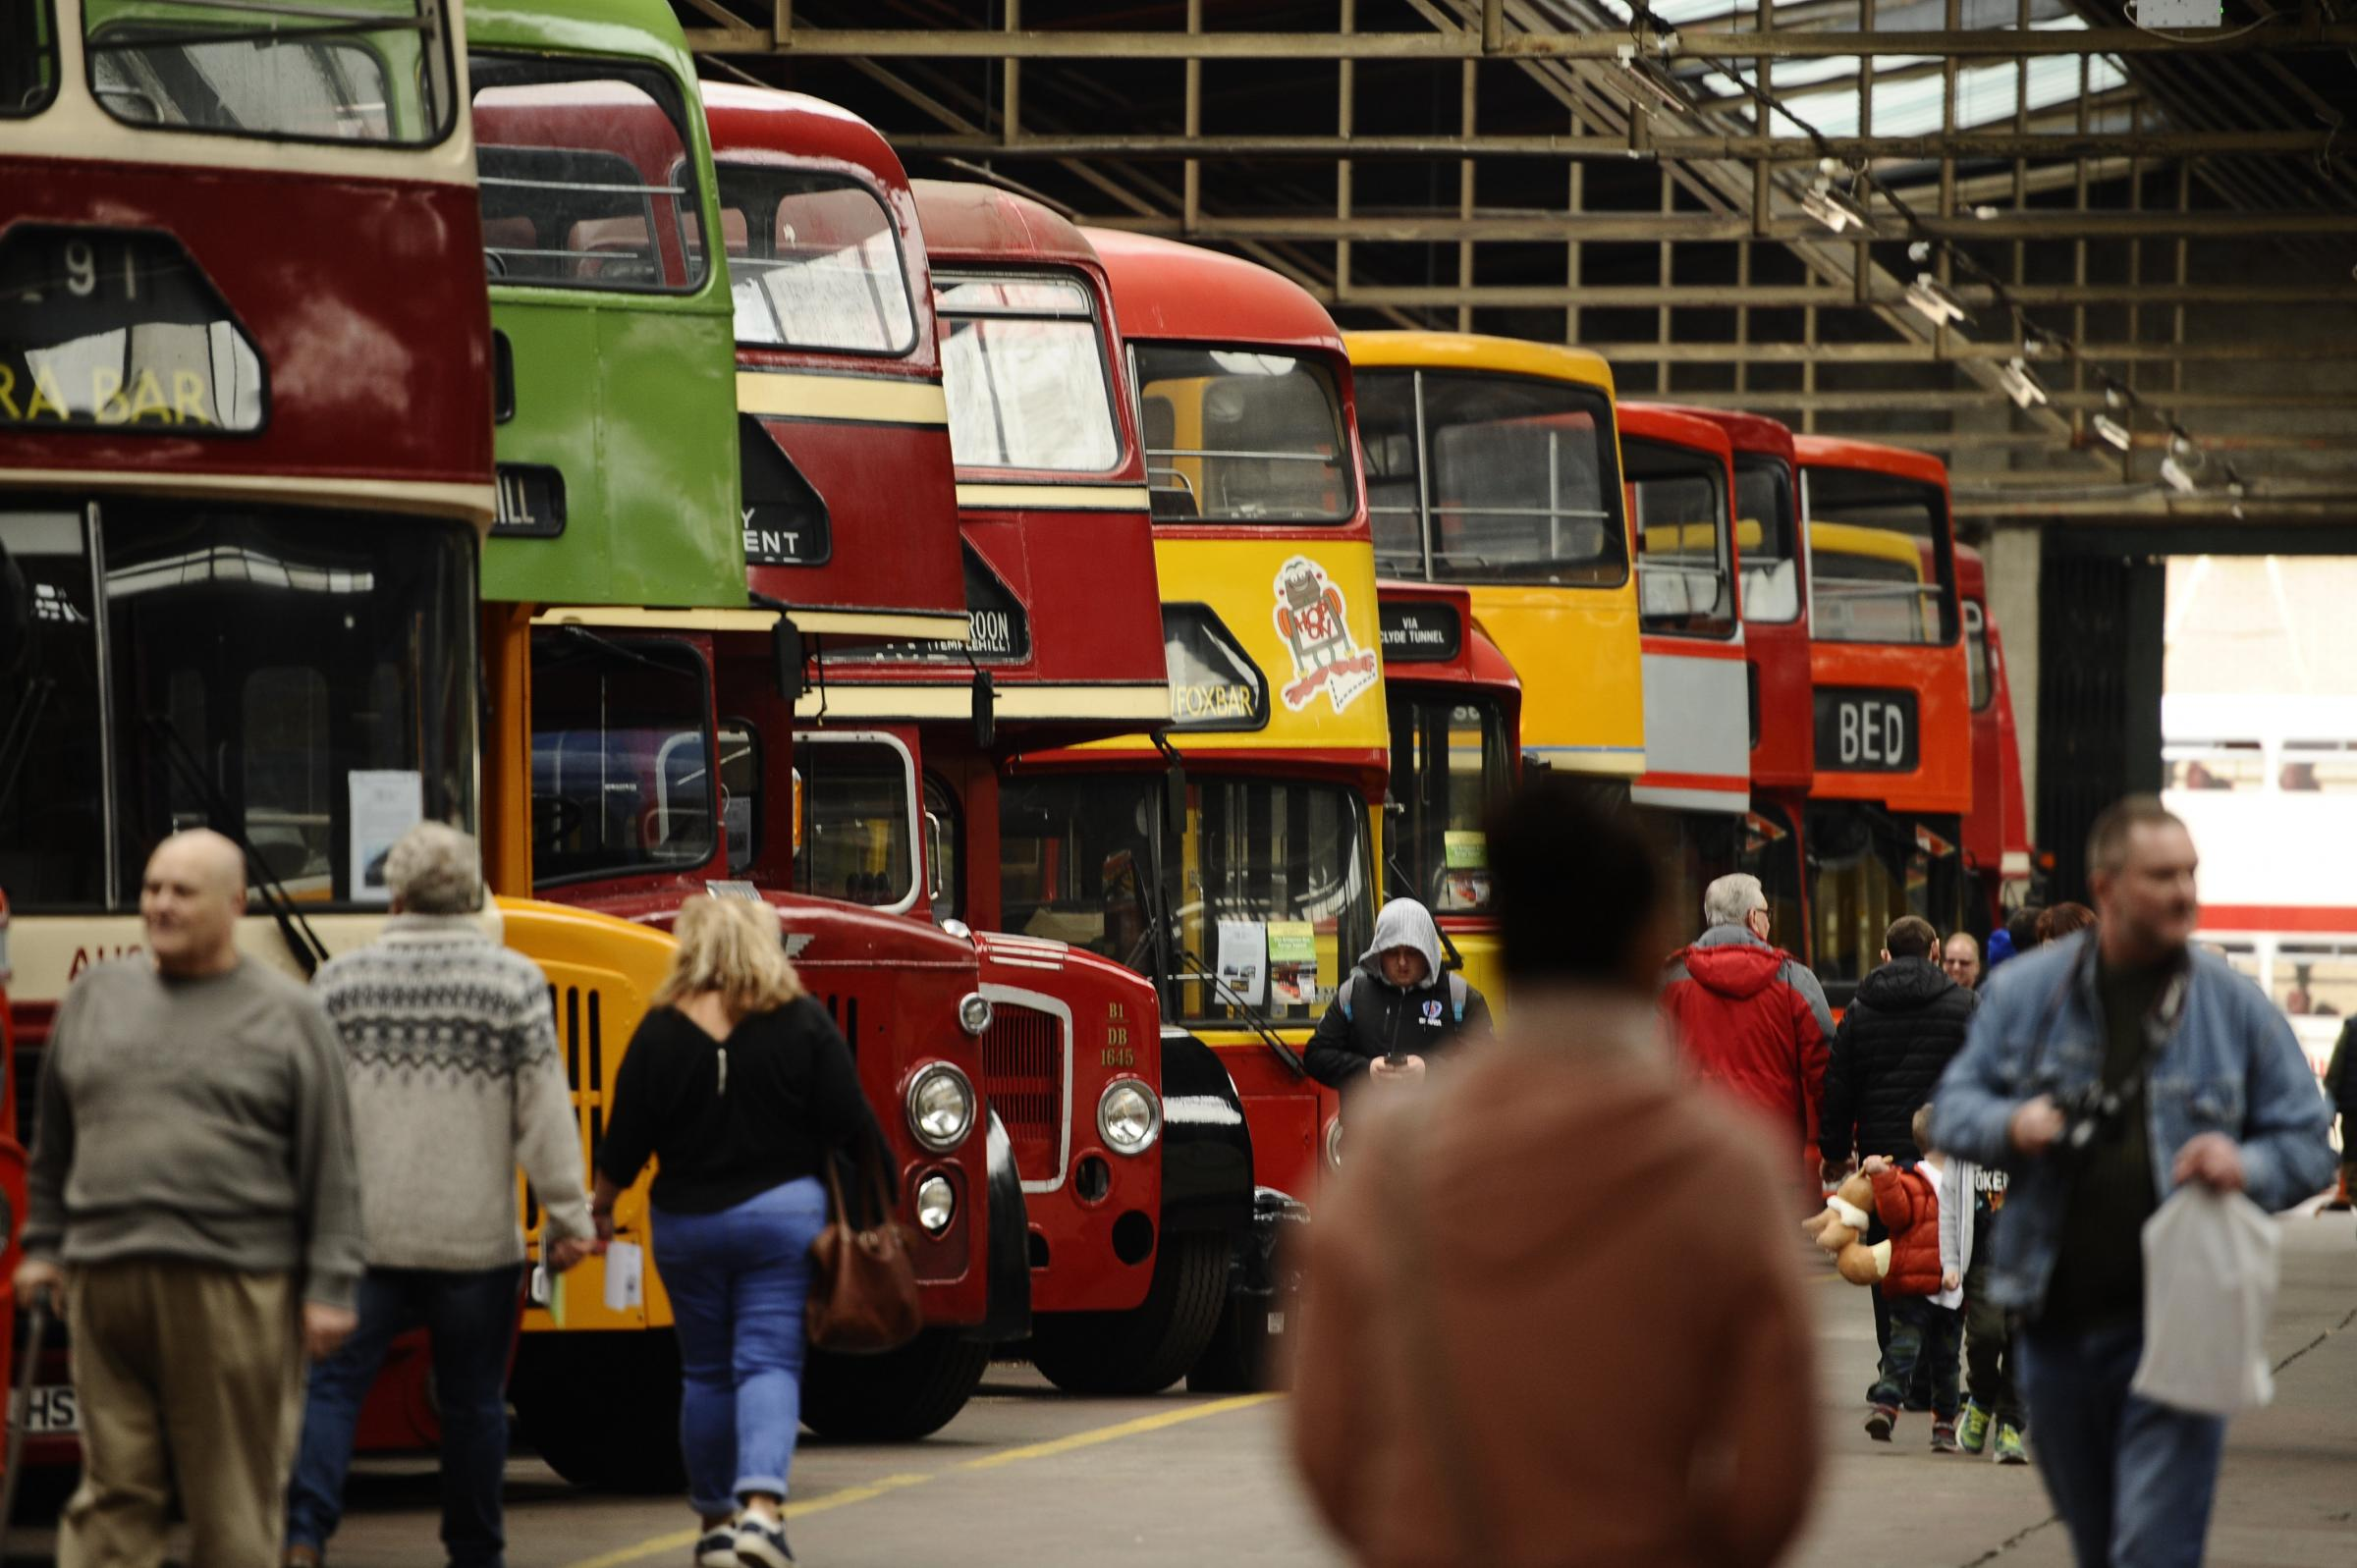 In pictures: Glasgow Vintage Vehicle Trust host open day